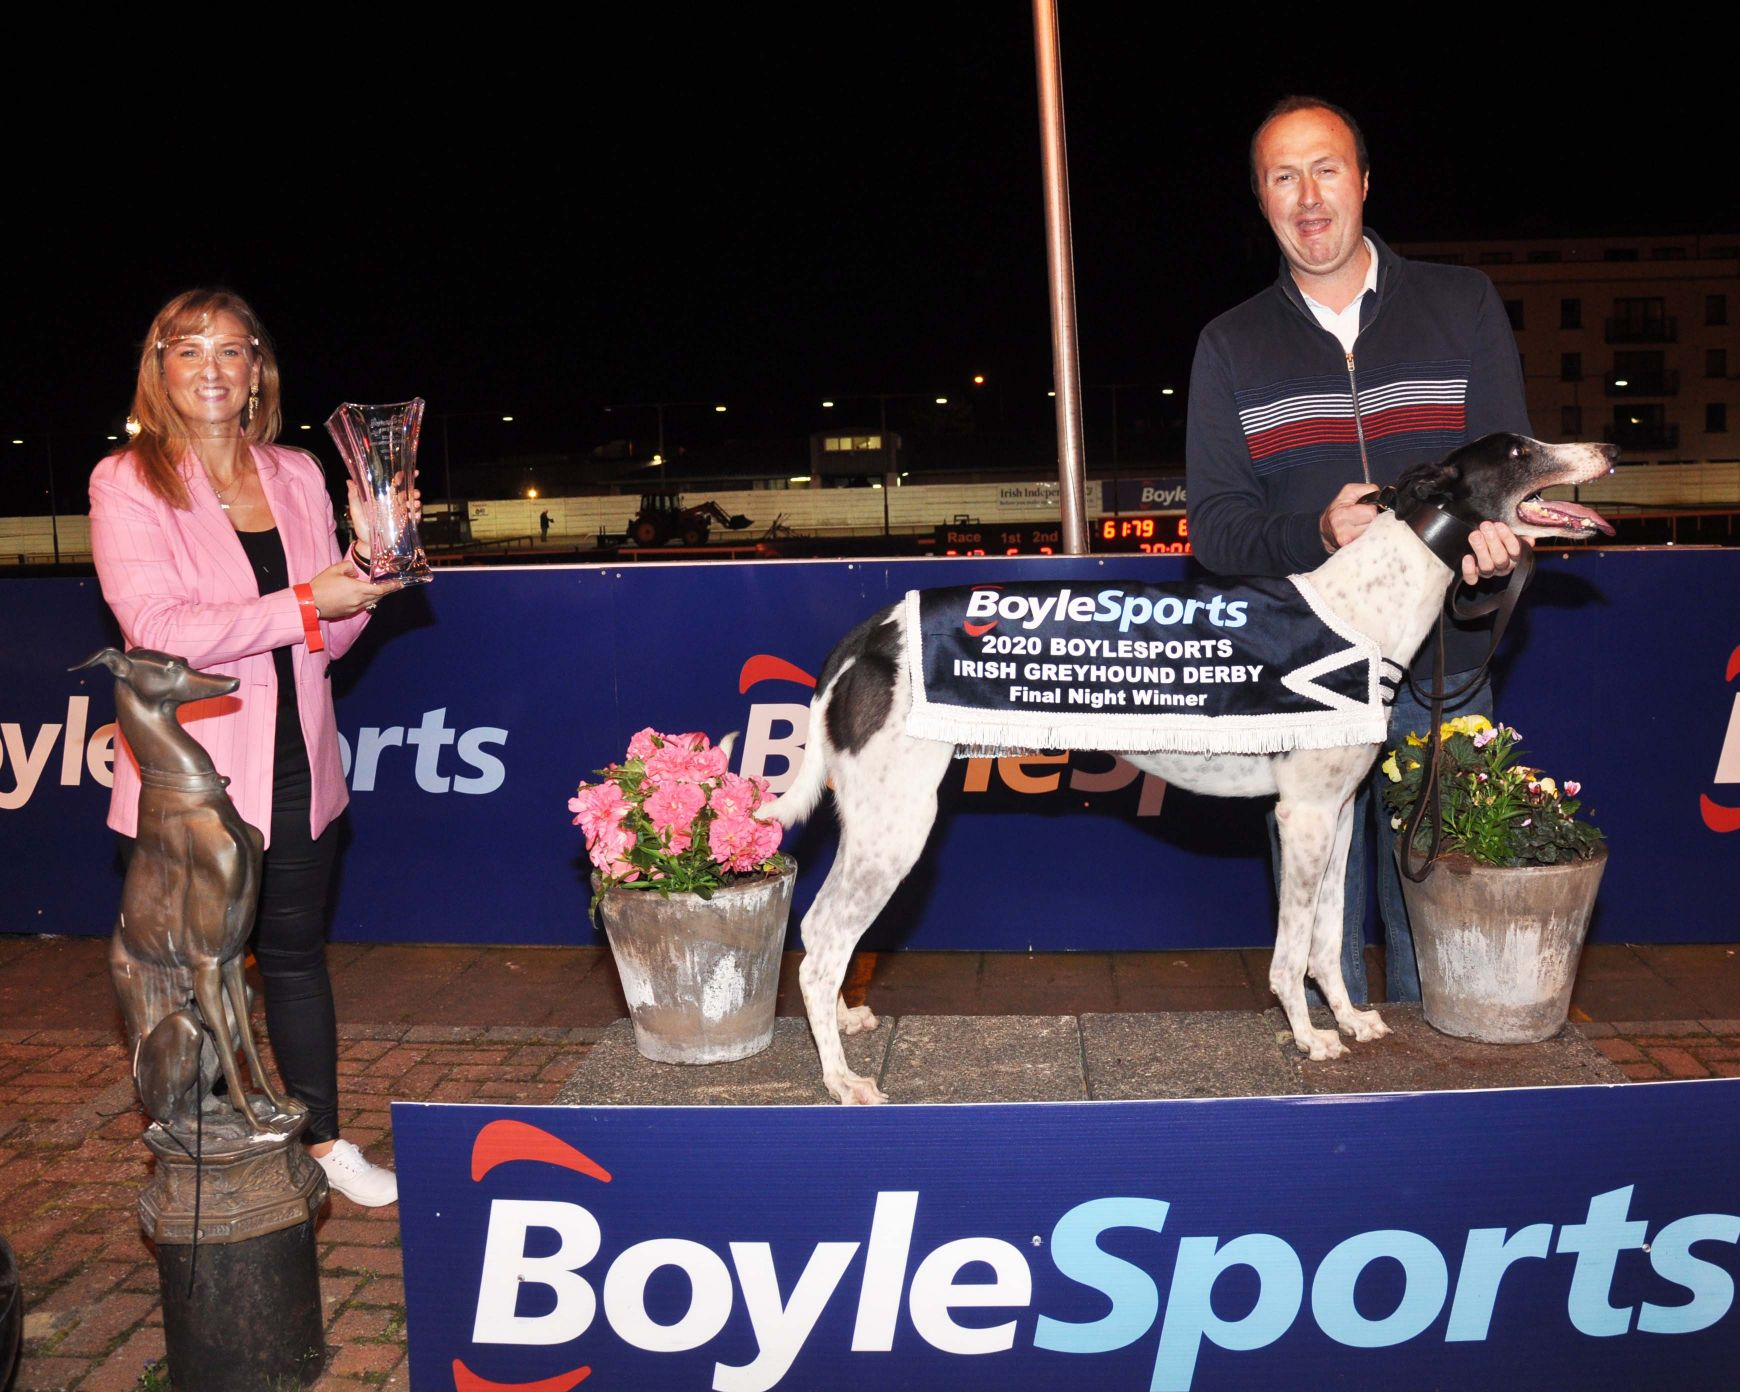 Irish greyhound derby betting 2021 movies what does 1.5 mean in betting